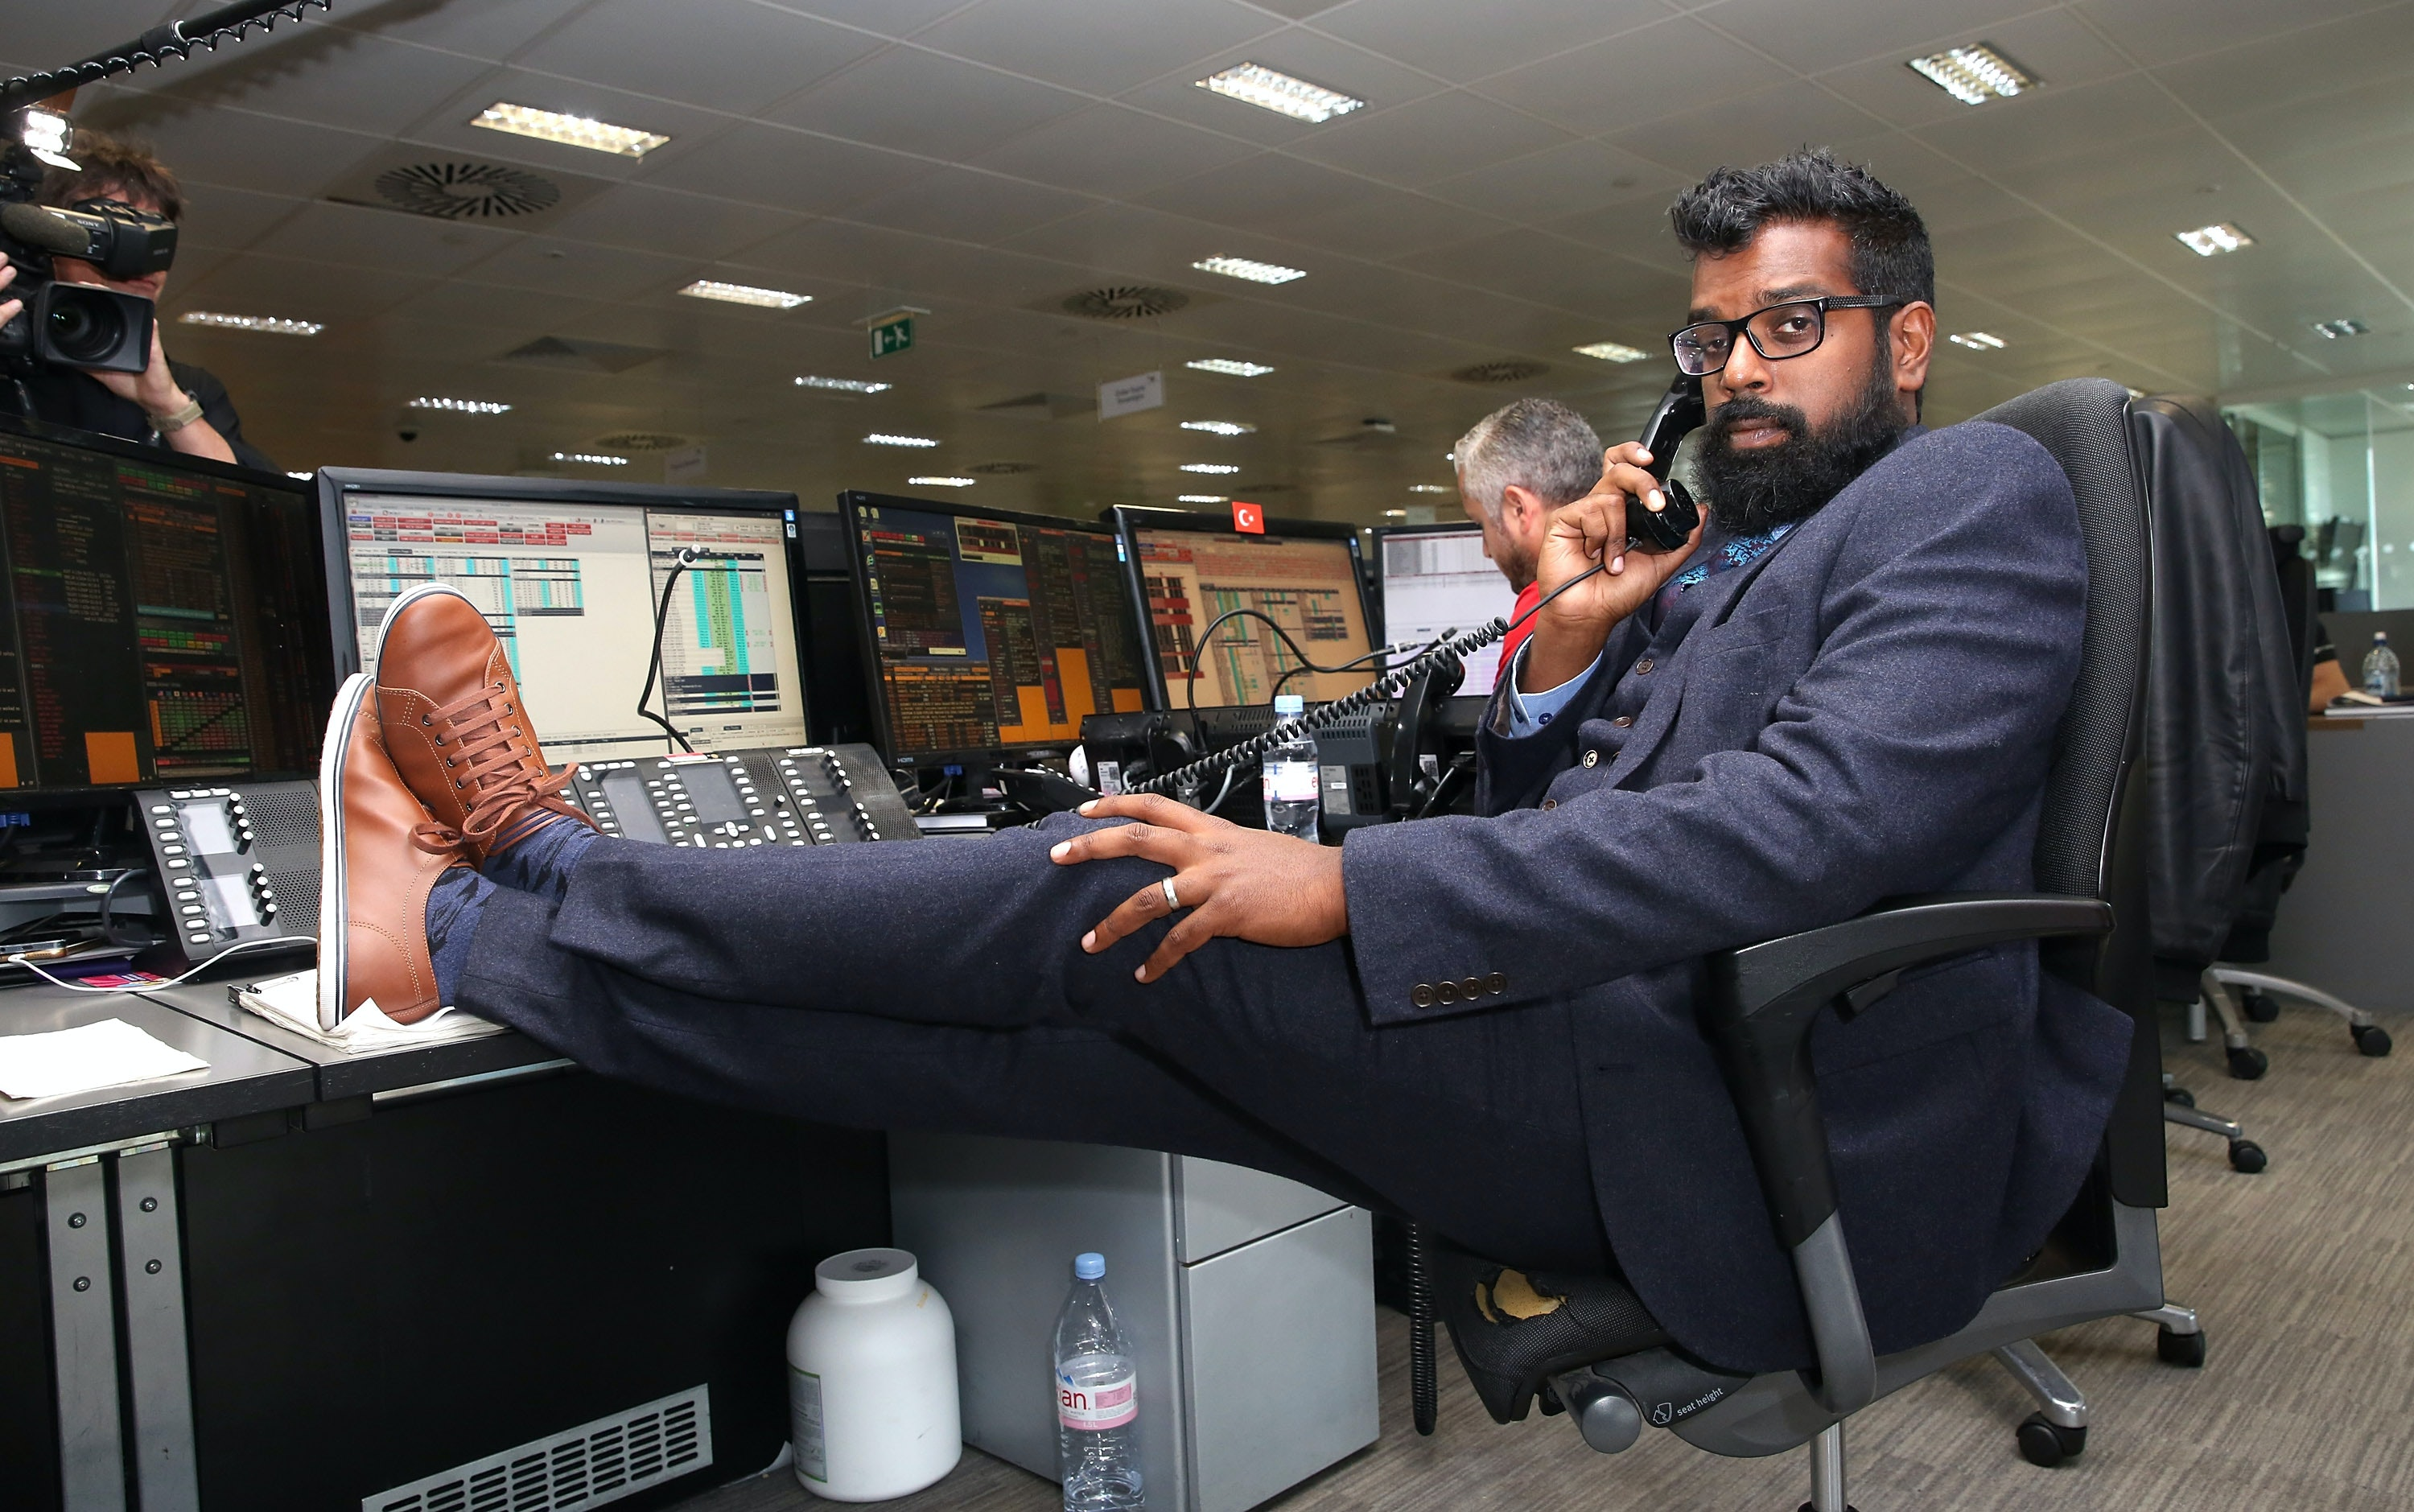 Comedian Tour Dates 2020 Will Romesh Ranganathan Tour The UK In 2020? The Comedian Has A